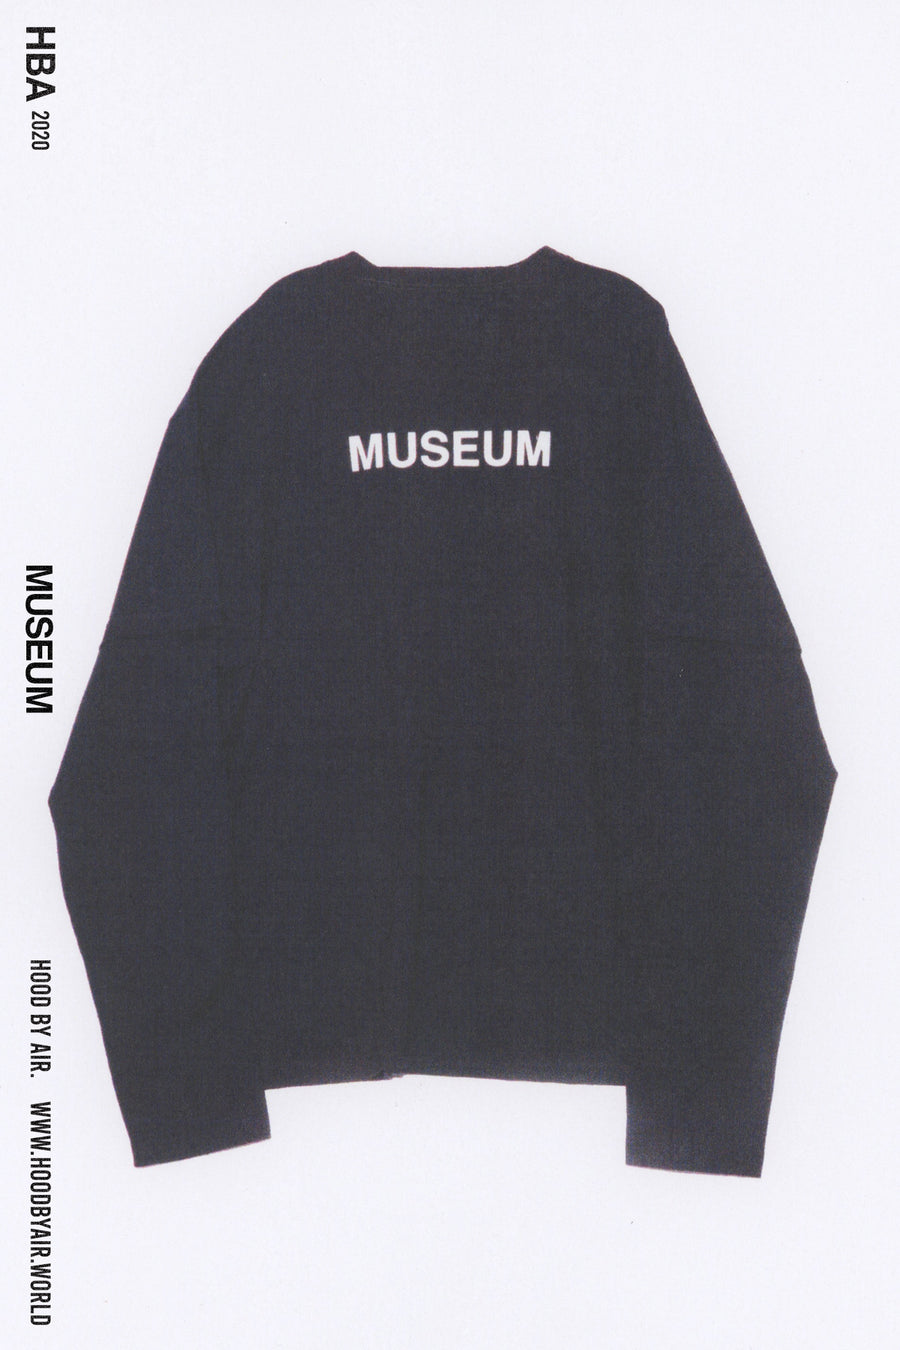 HBA-M-002-01 MUSEUM SHORT OVER LONG BLACK